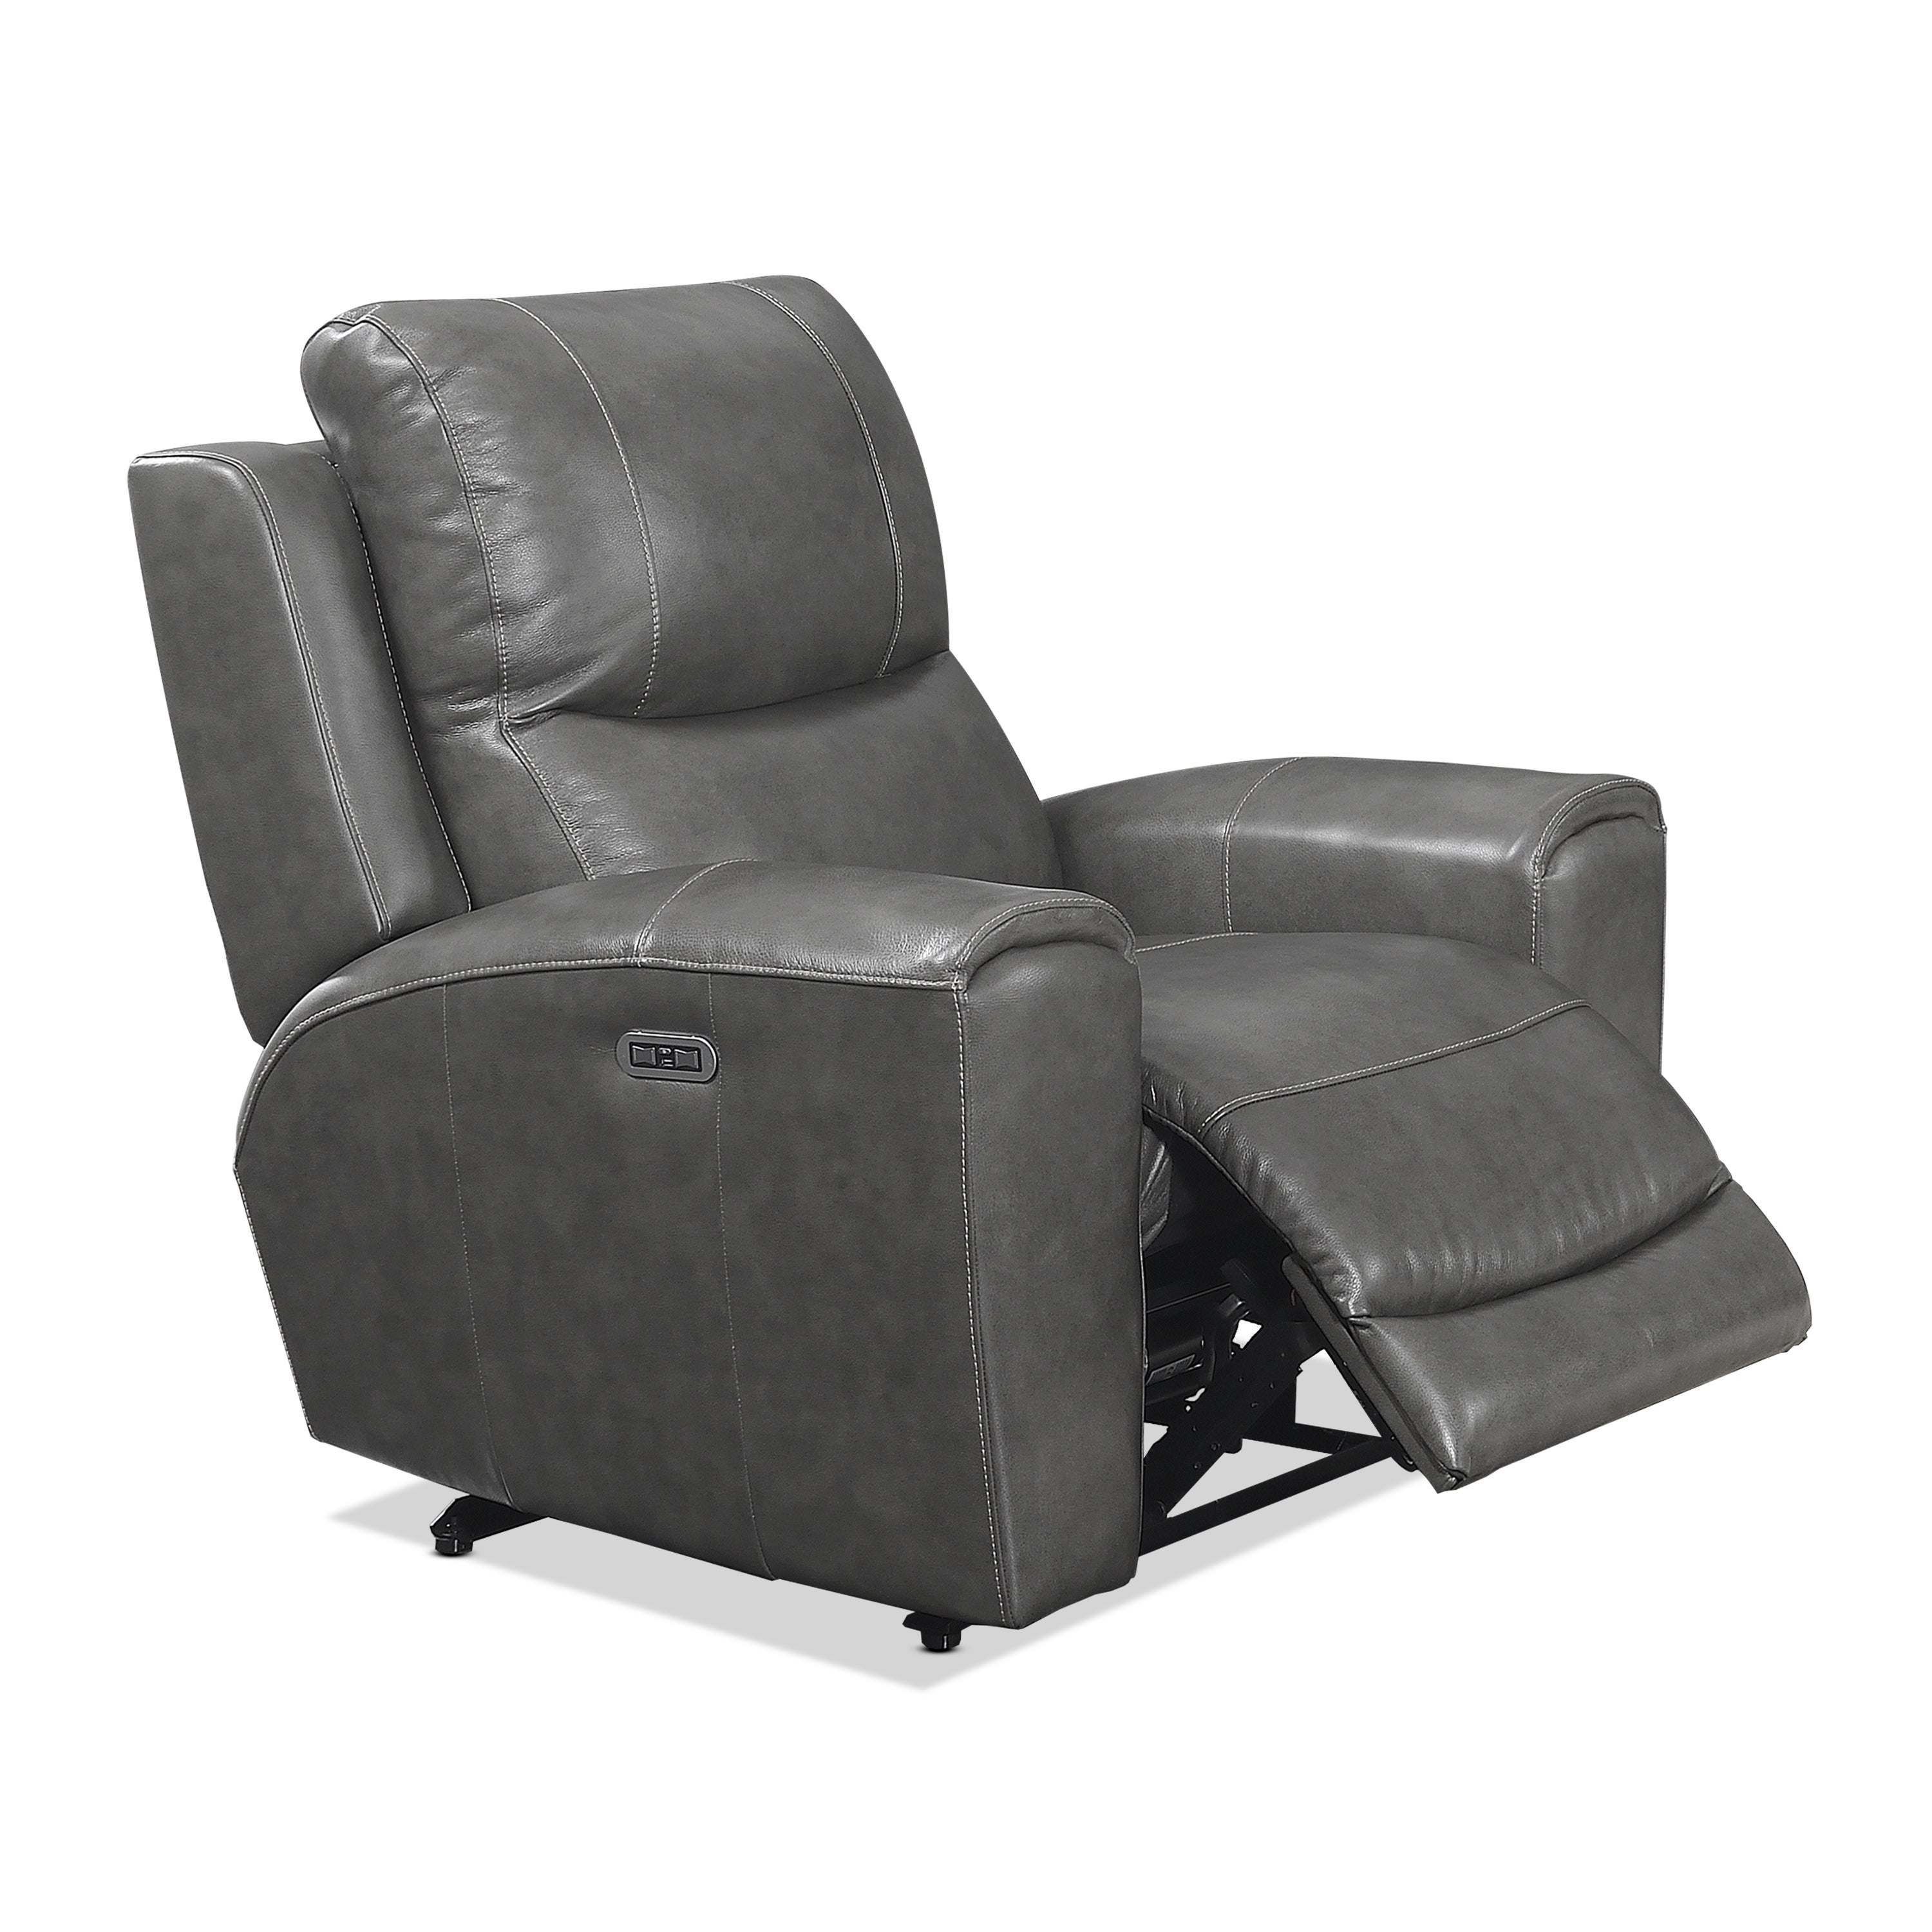 Astonishing Liberty Power Reclining Chair By Greyson Living Ibusinesslaw Wood Chair Design Ideas Ibusinesslaworg